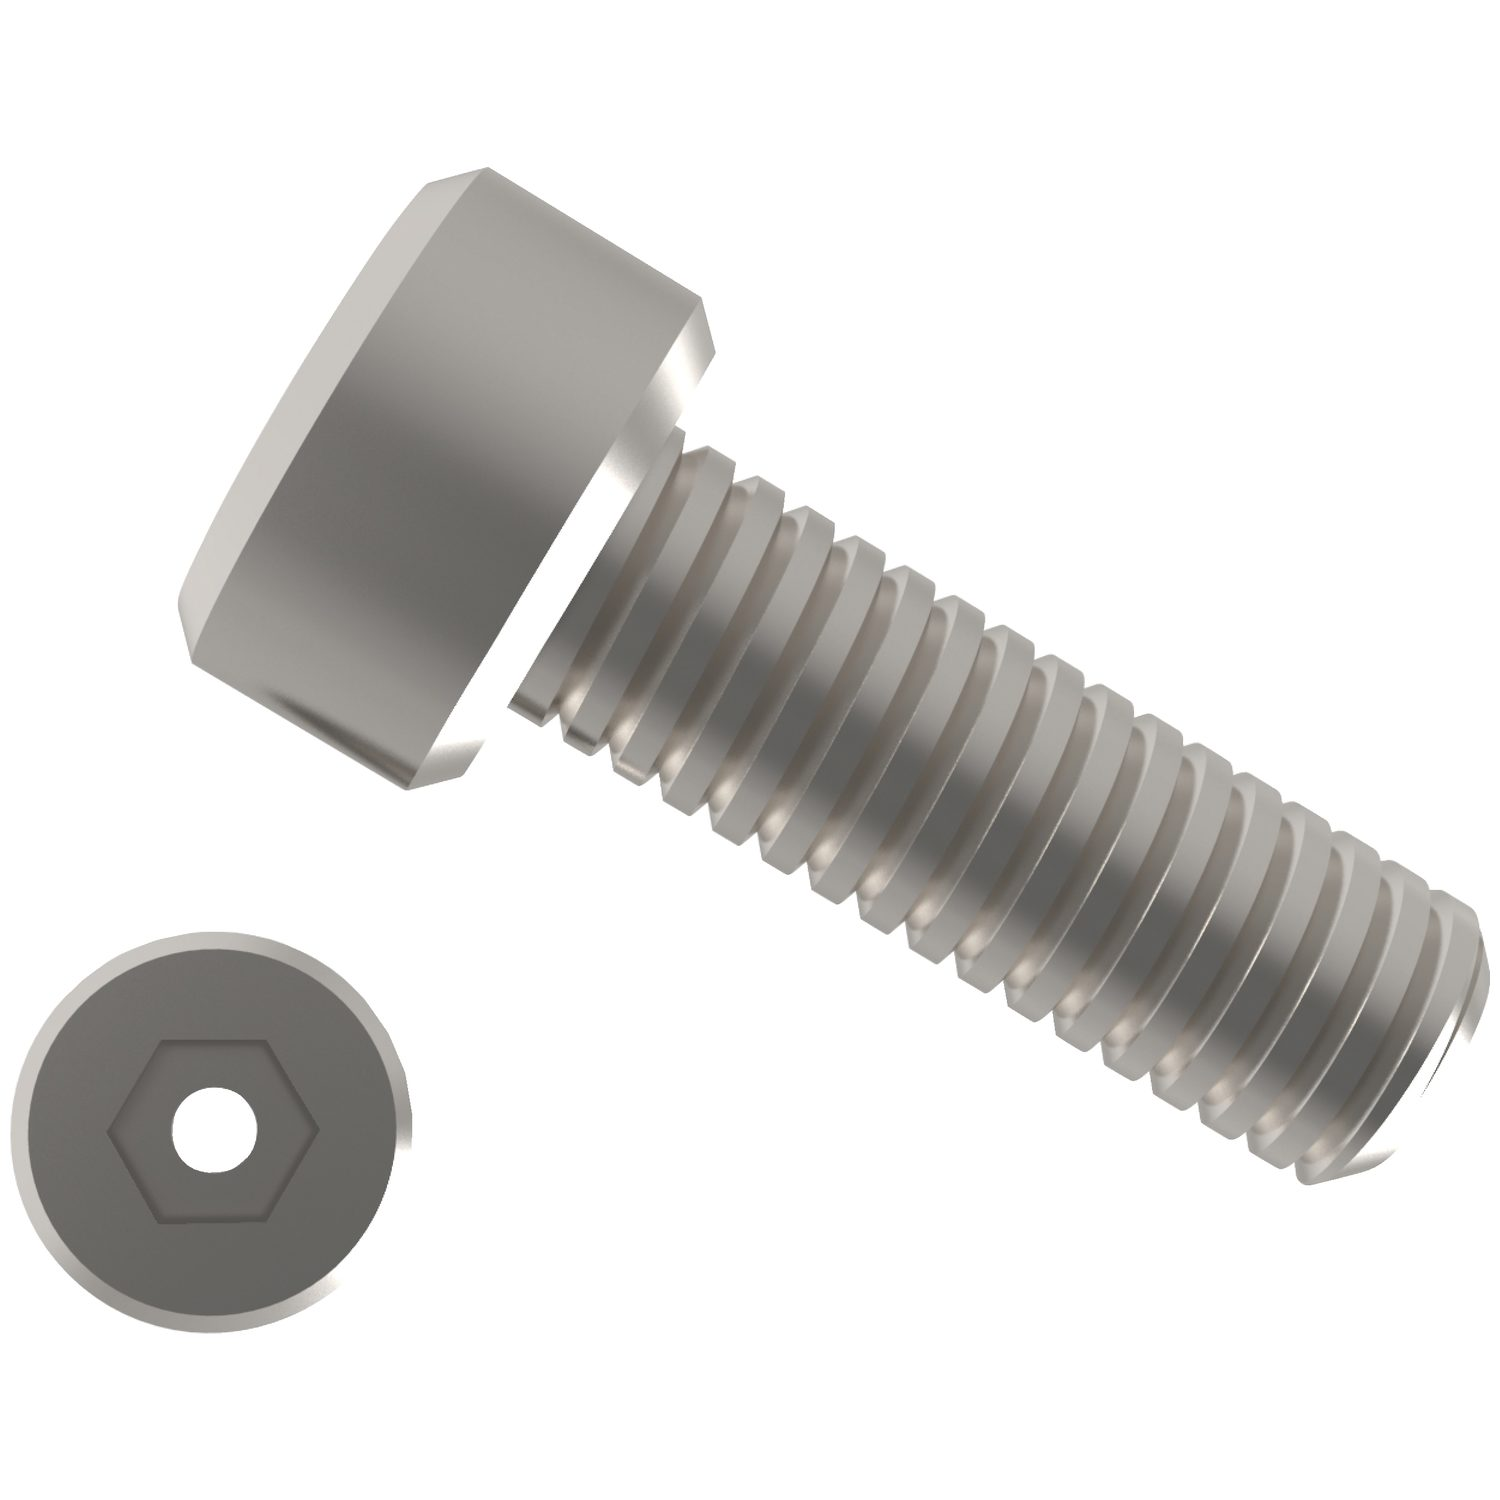 Vented Screws